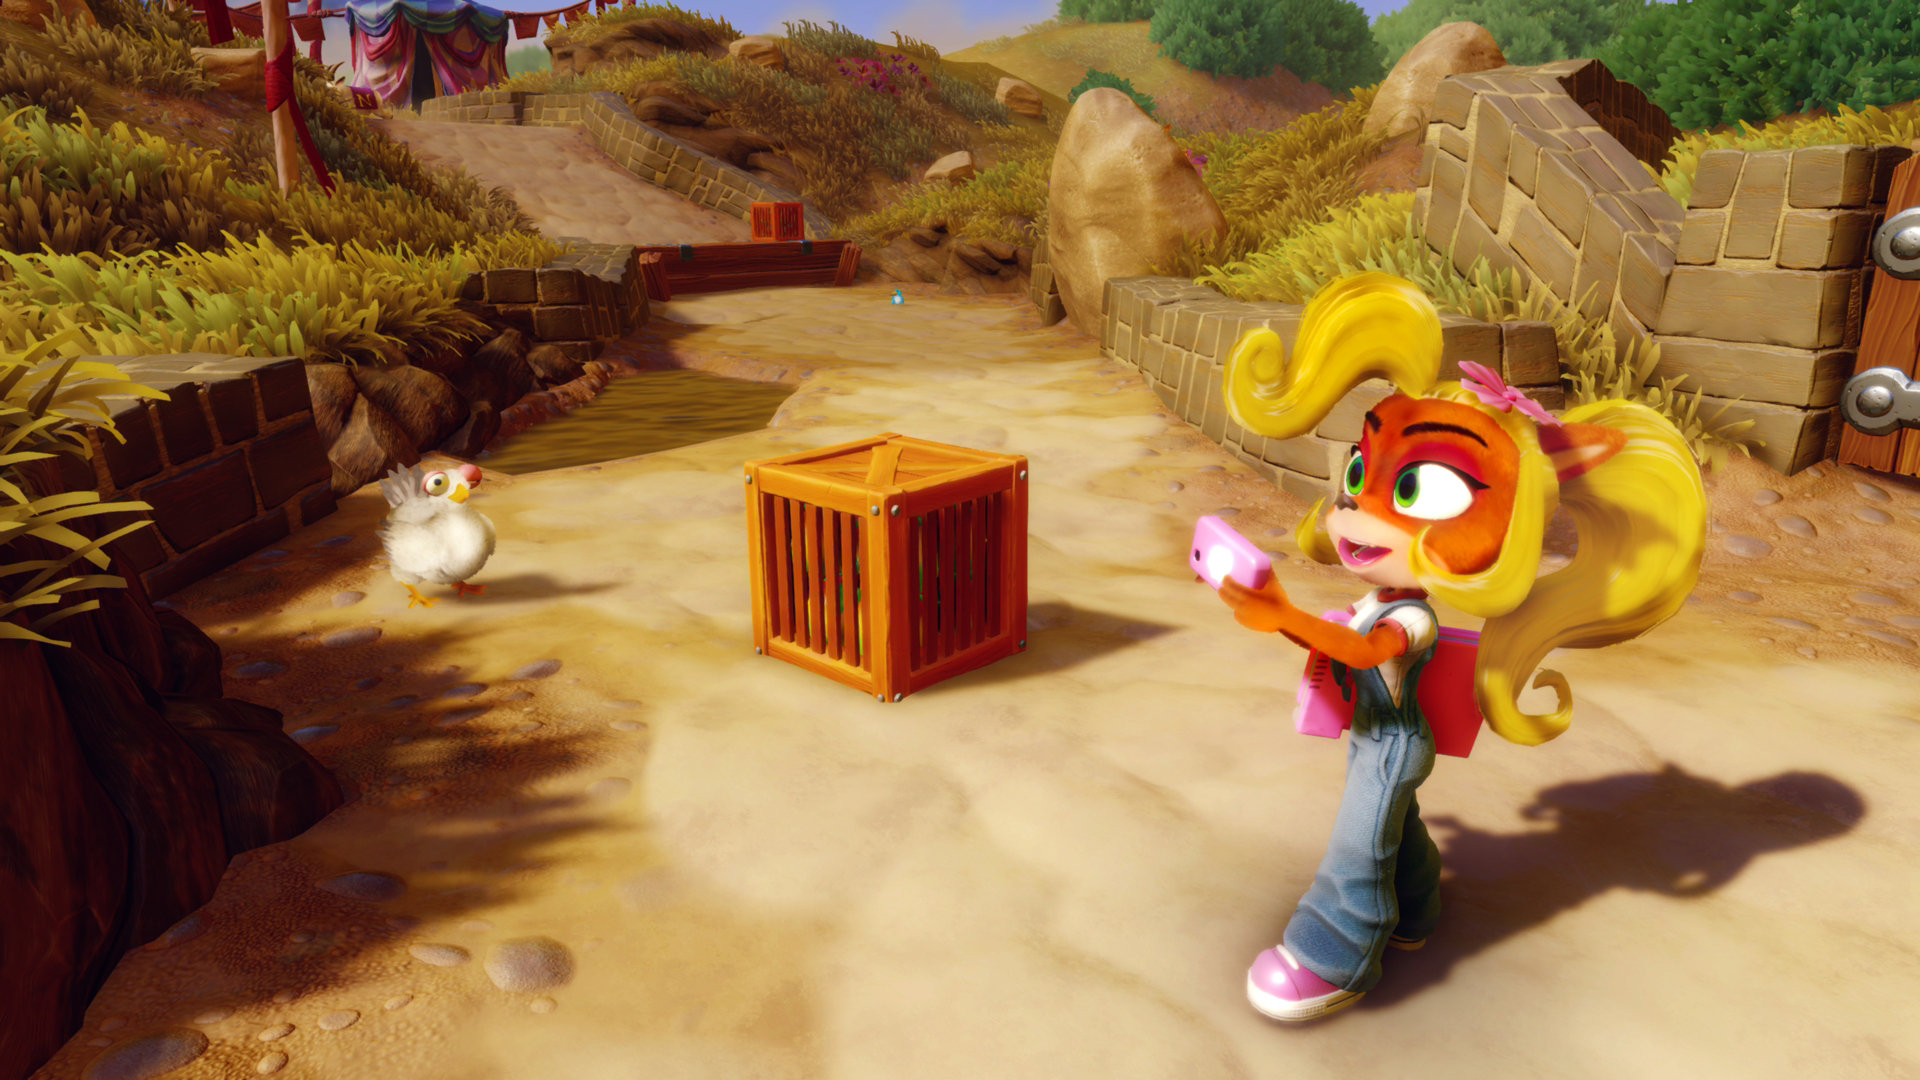 Play as Coco